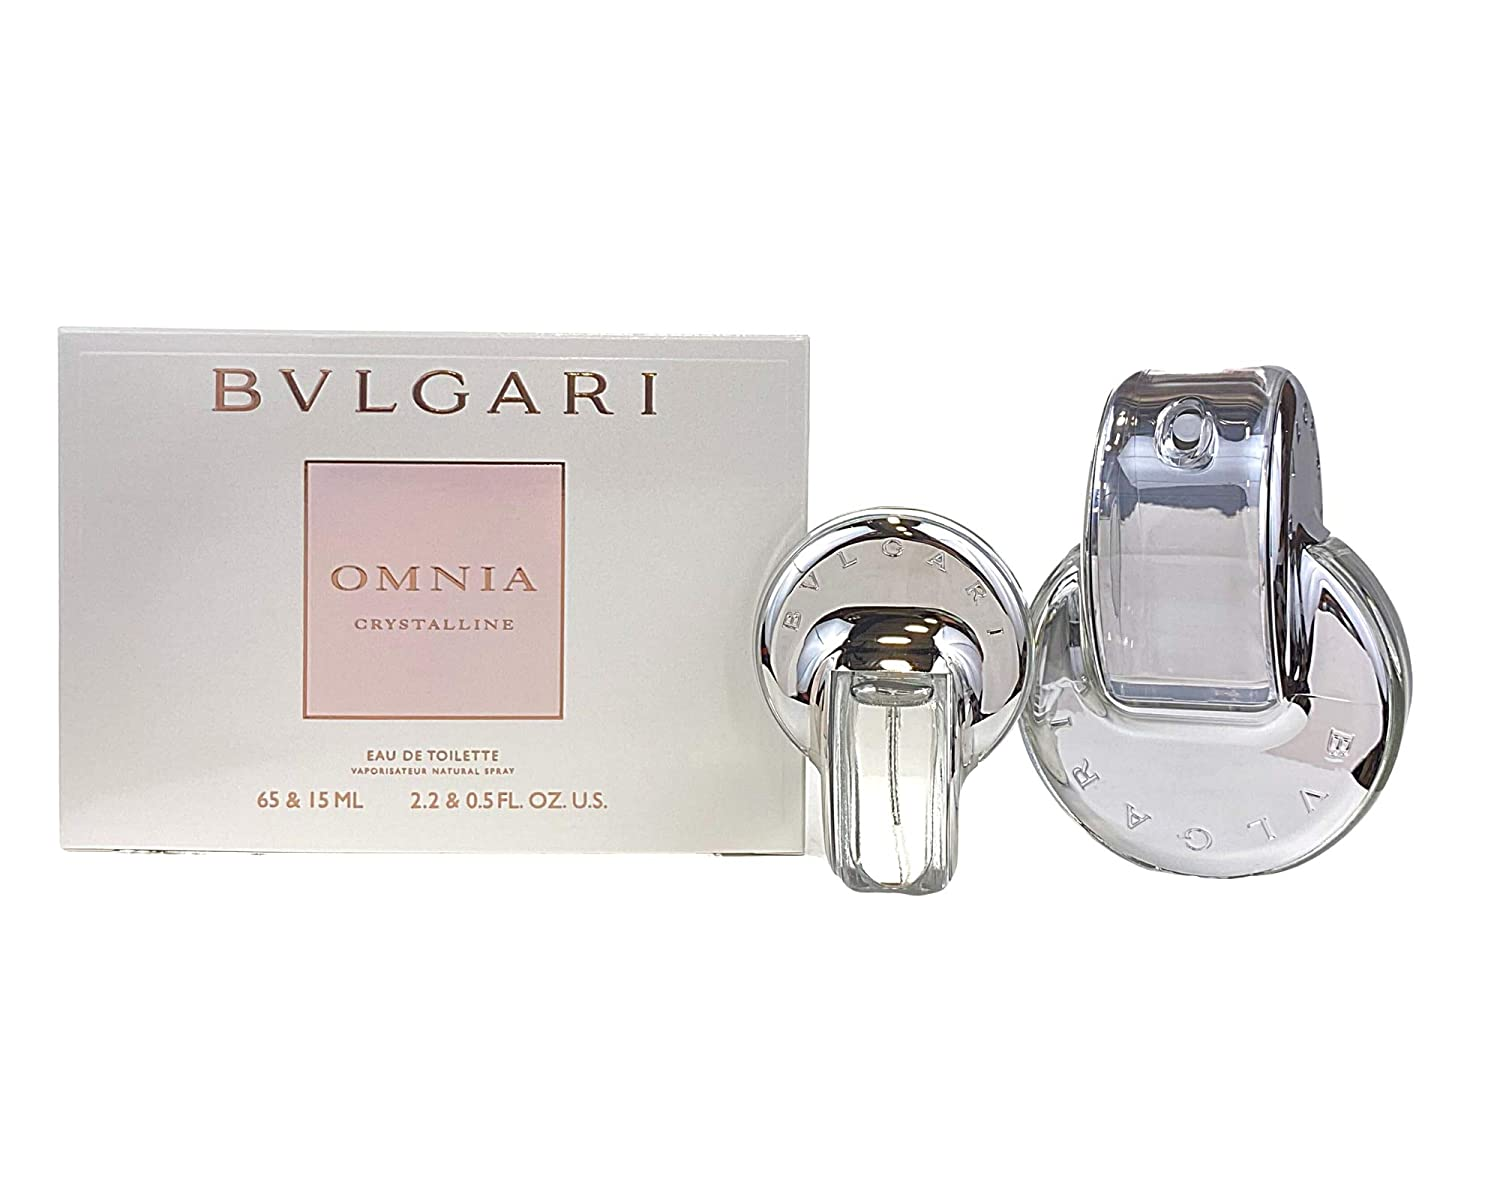 Bvlgari Omnia Crystalline SET: edt 65ml + edt 15ml